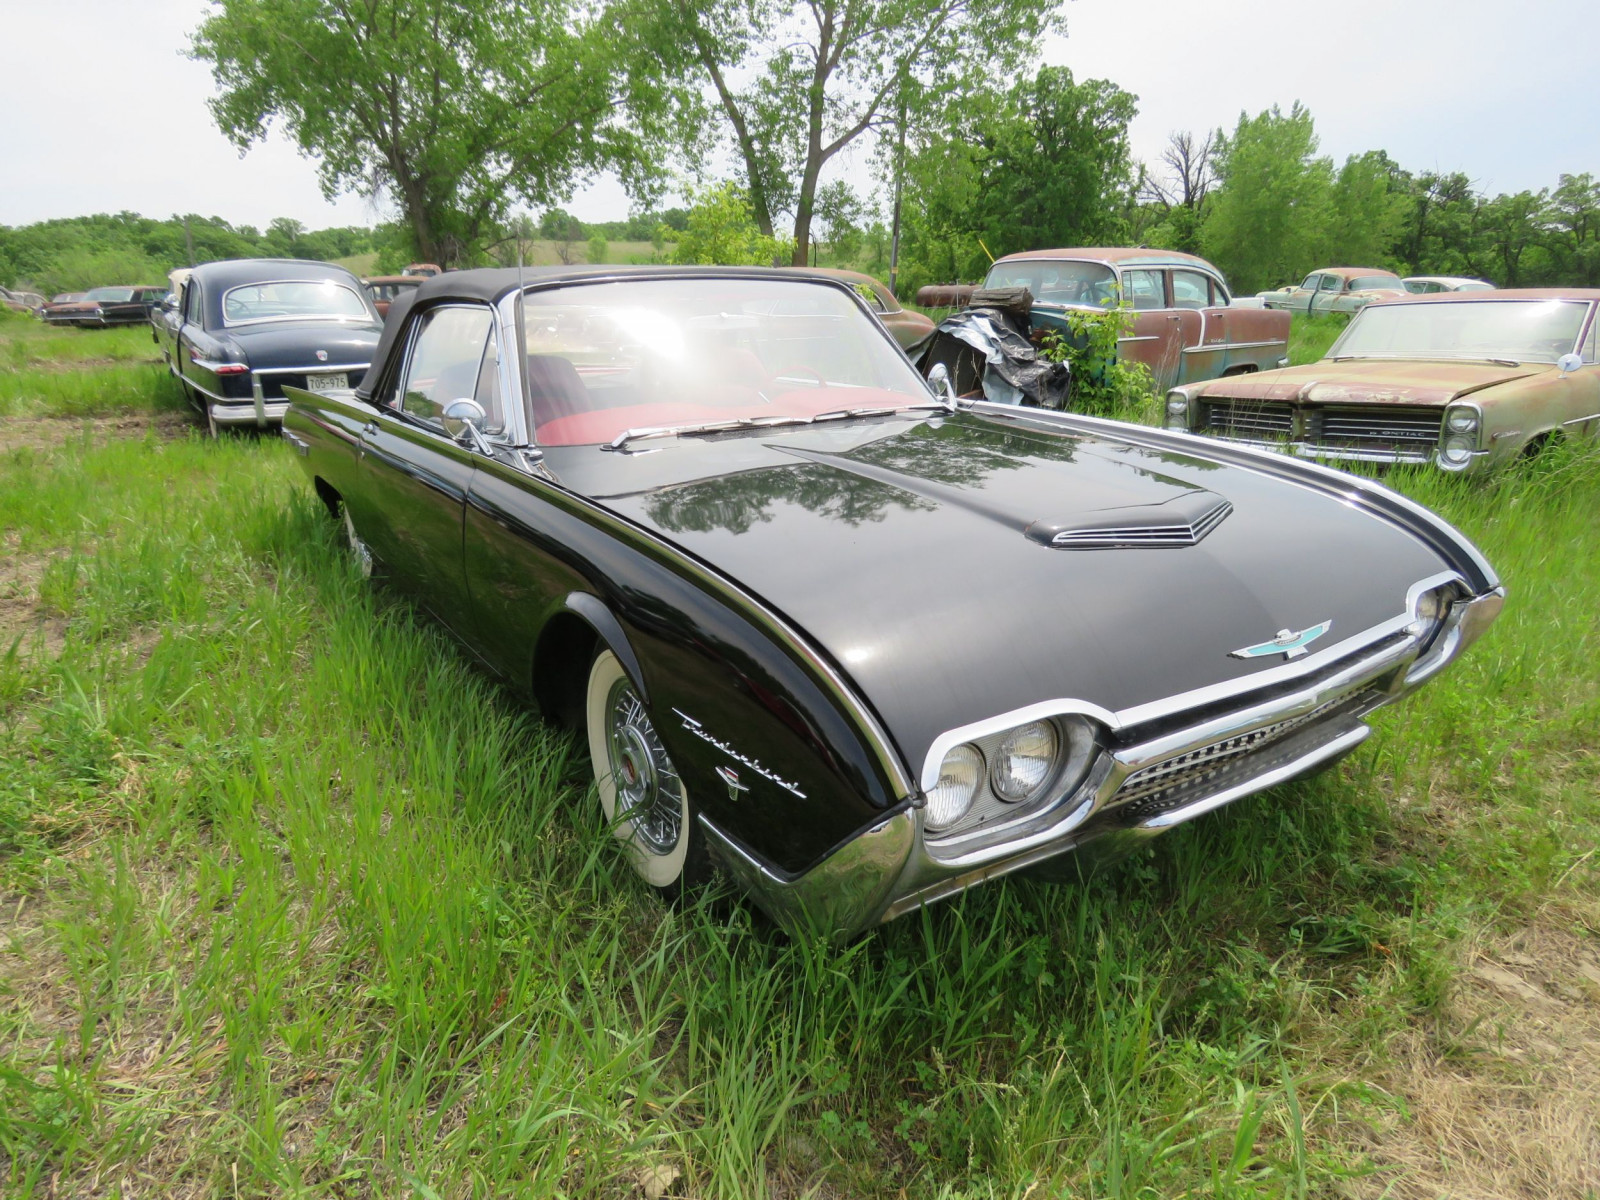 1962 Ford Thunderbird Convertible - Image 3